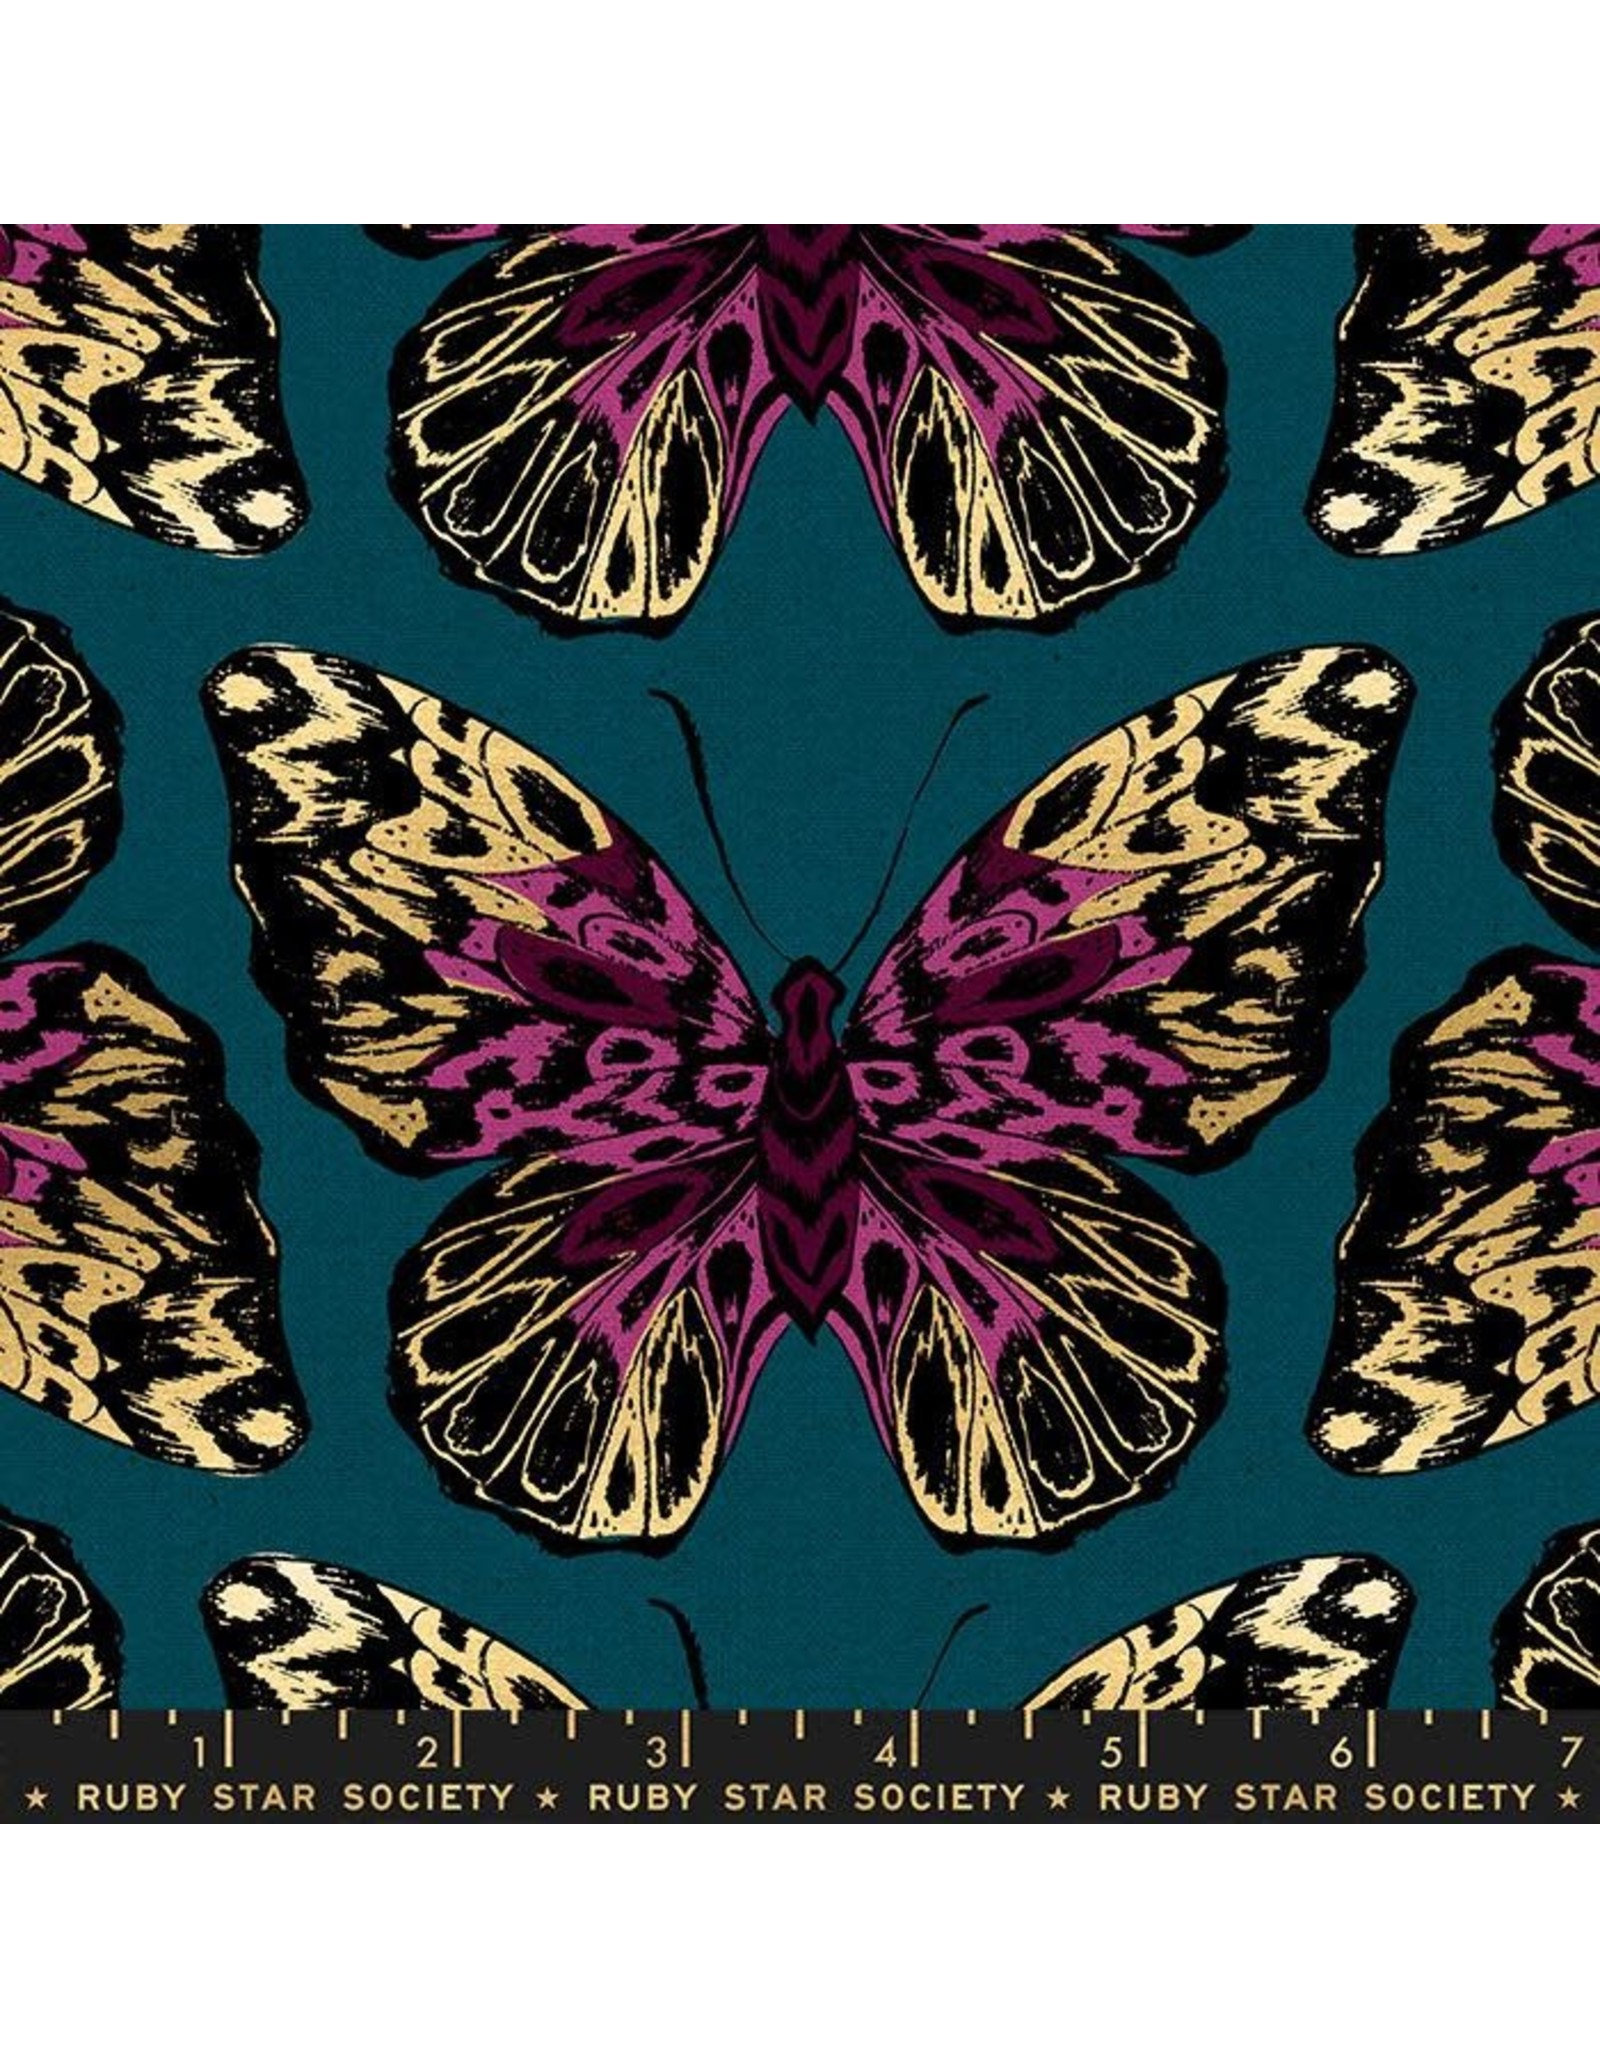 Sarah Watts Cotton Linen Canvas, Ruby Star Society, Tiger Fly, Queen in Teal with Metallic, Fabric Half-Yards RS2016 14LM